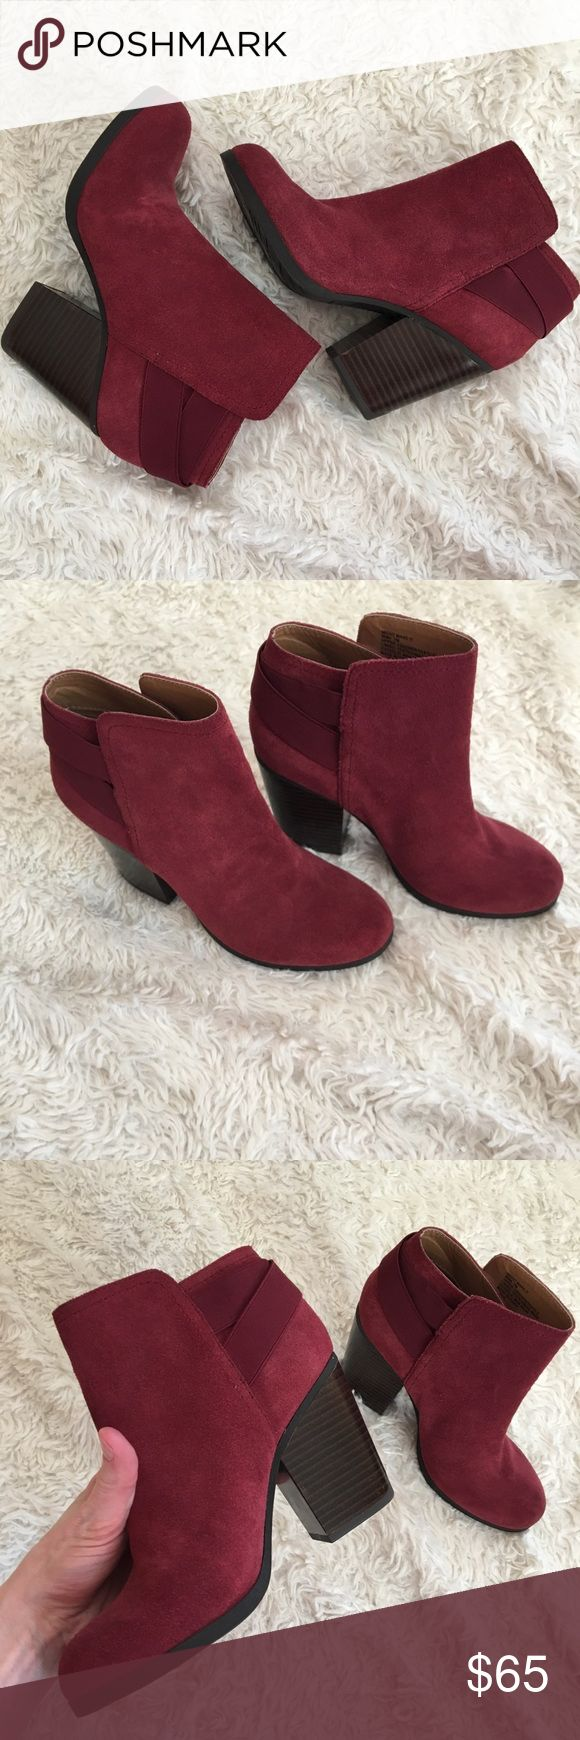 """✨NWOT✨KENNETH COLE Reaction Booties Burgundy Booties with crisscross detail in back. NEW though they were out on the floor when I bought them at the Nordstrom Outlet. 3.5"""" chunky heel. Red/Purple Wine colored. OFFERS WELCOME ❤️. Kenneth Cole Reaction Shoes Ankle Boots & Booties"""